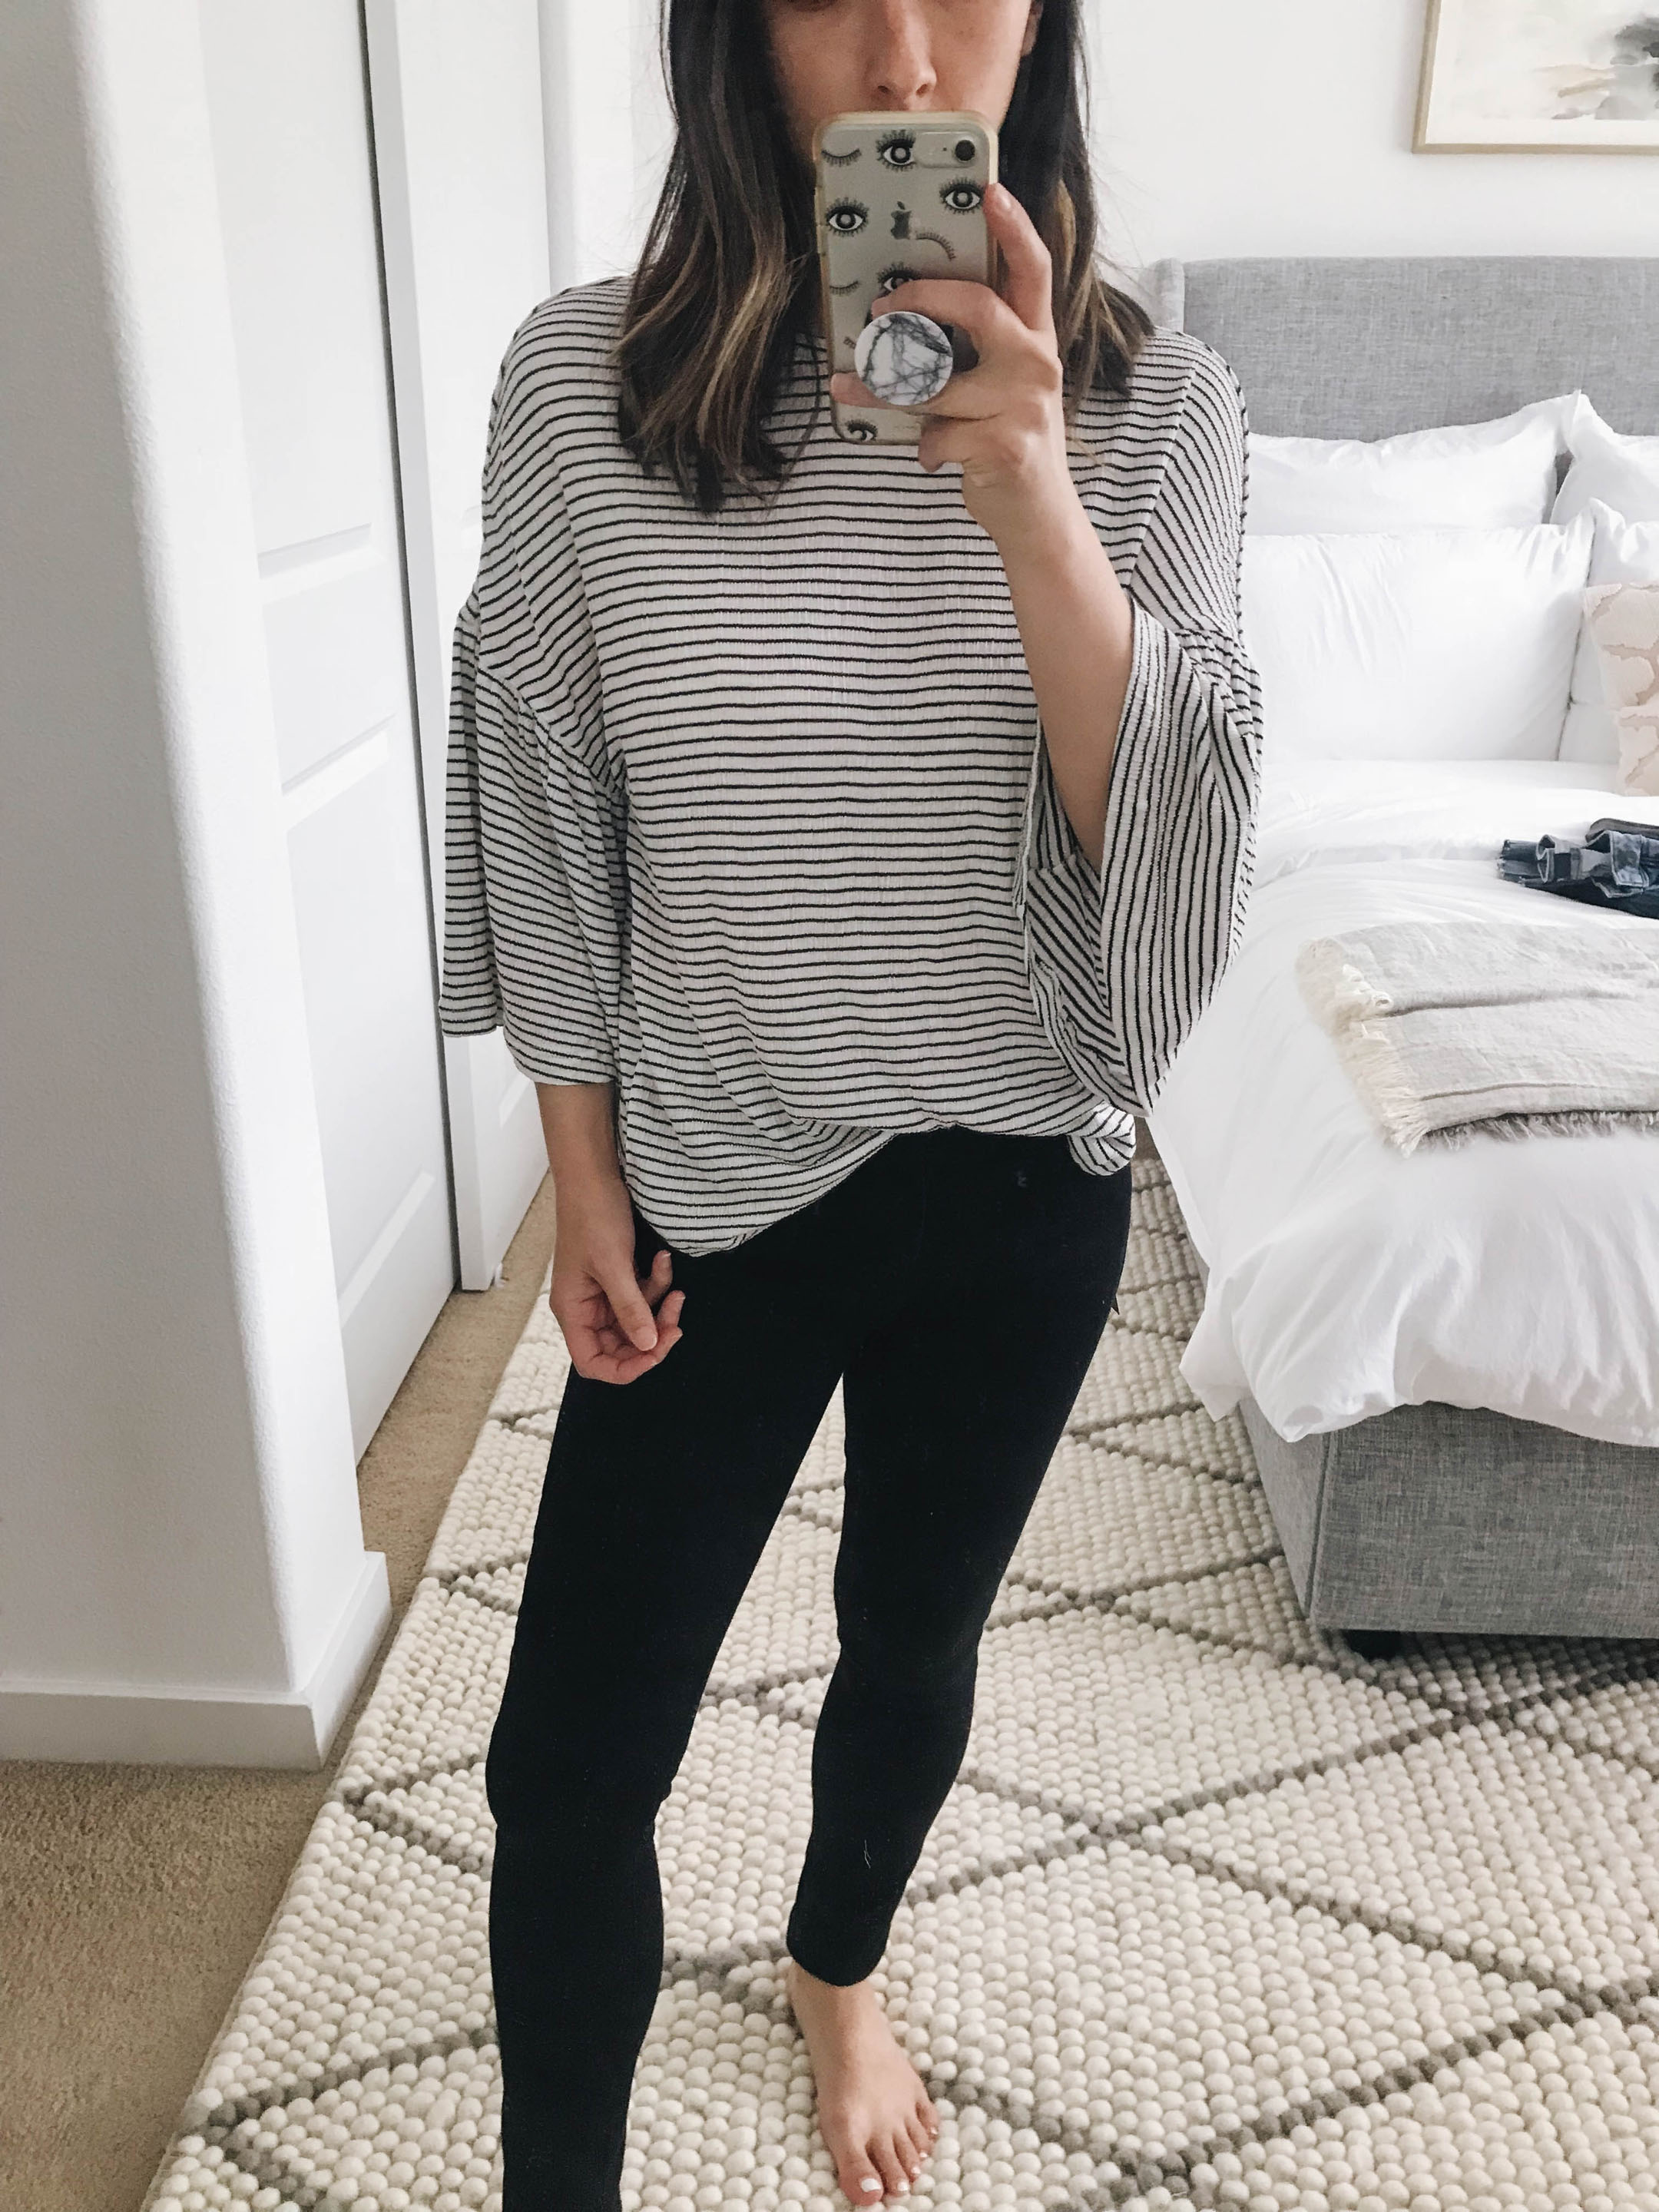 0110fc51aad9a Caslon Stripe Bell Sleeve Tee petite xxs – This tee was part of the Nordstrom  Anniversary Sale last year and they brought it back.